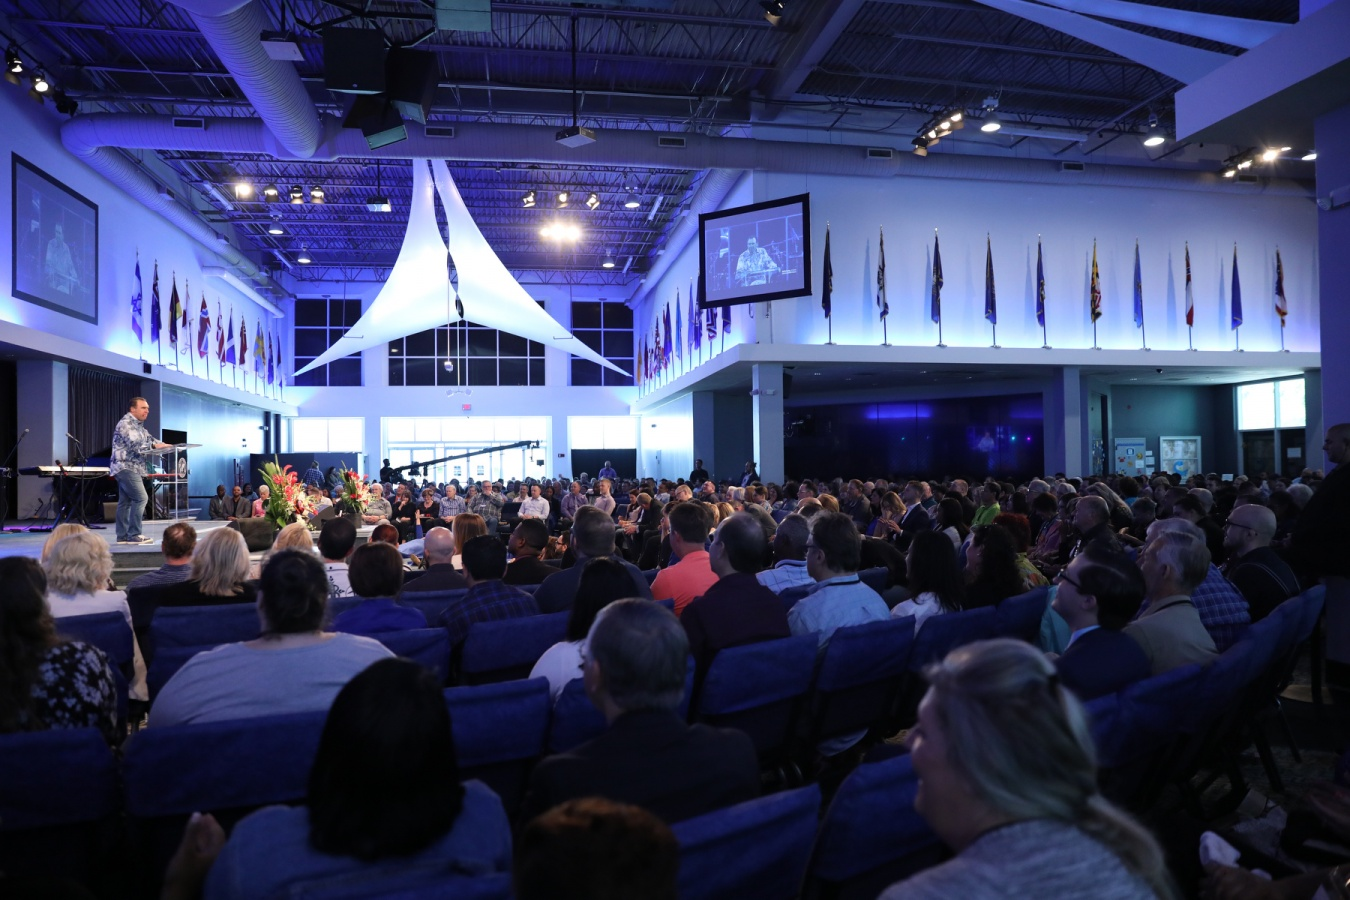 Ministers' & Leaders' Conference Day 4